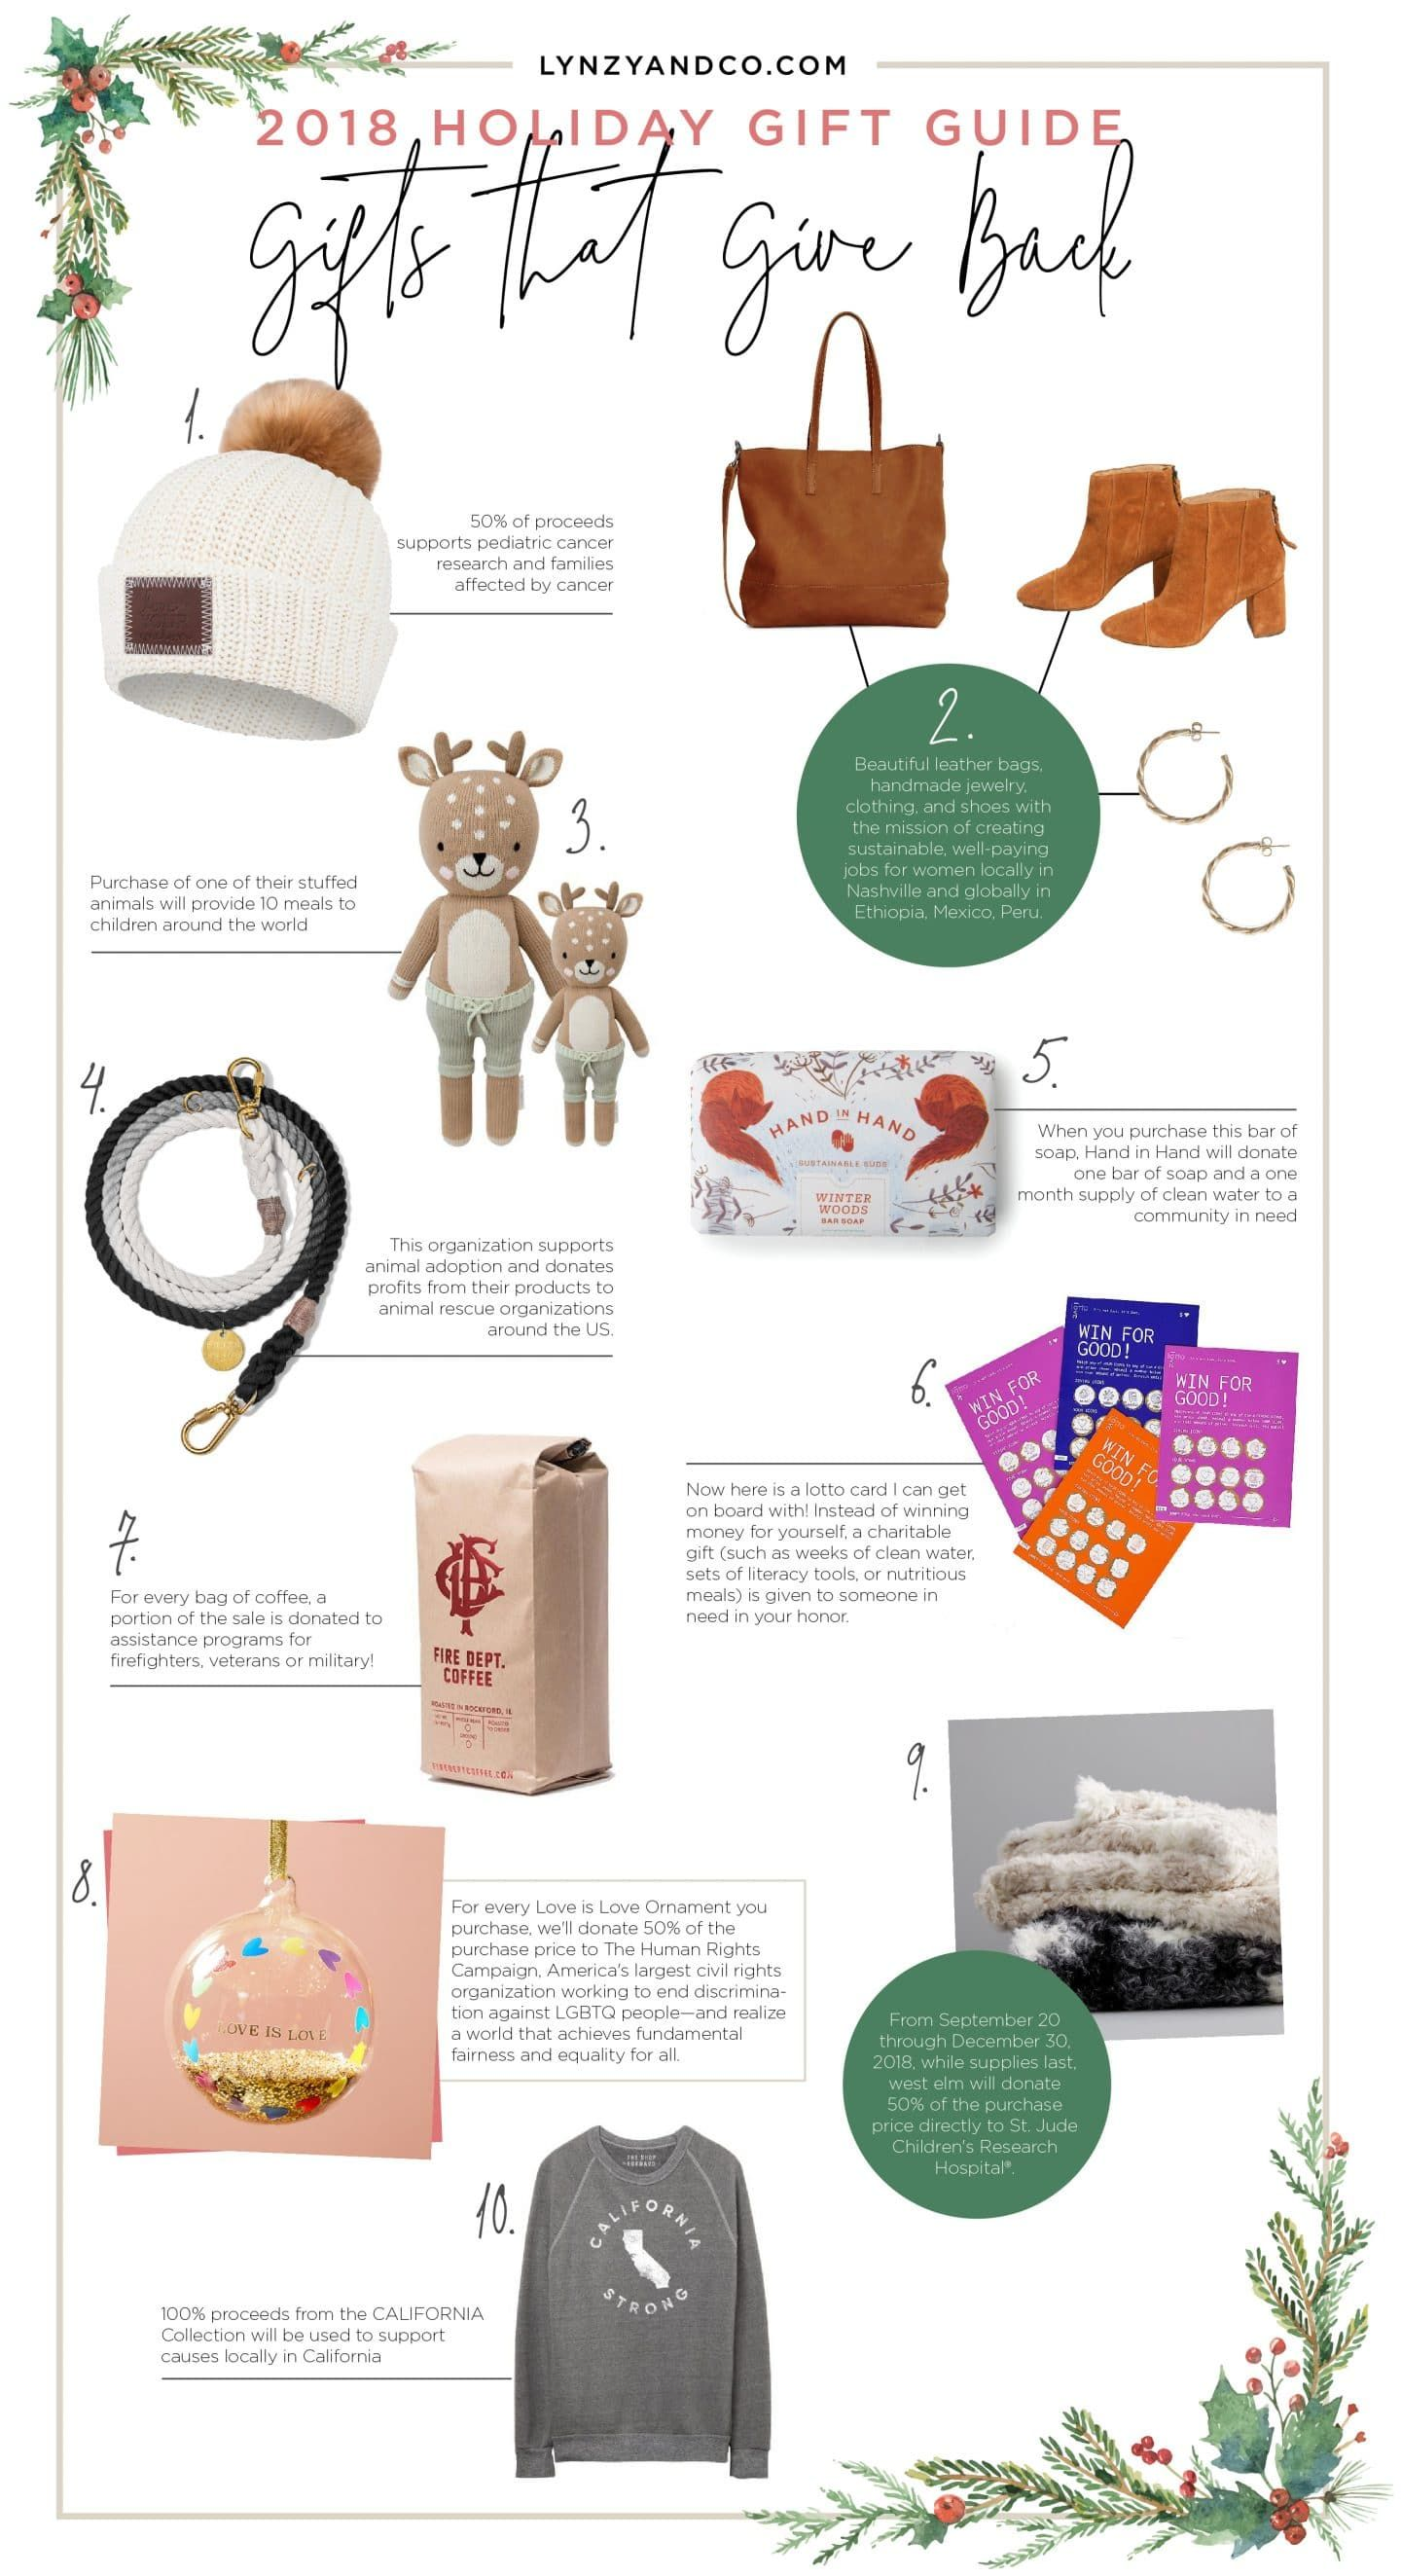 Holiday Gift Guide Gifts That Give Back Lynzy Co Unique Gift Guide Holiday Gifts Gifts